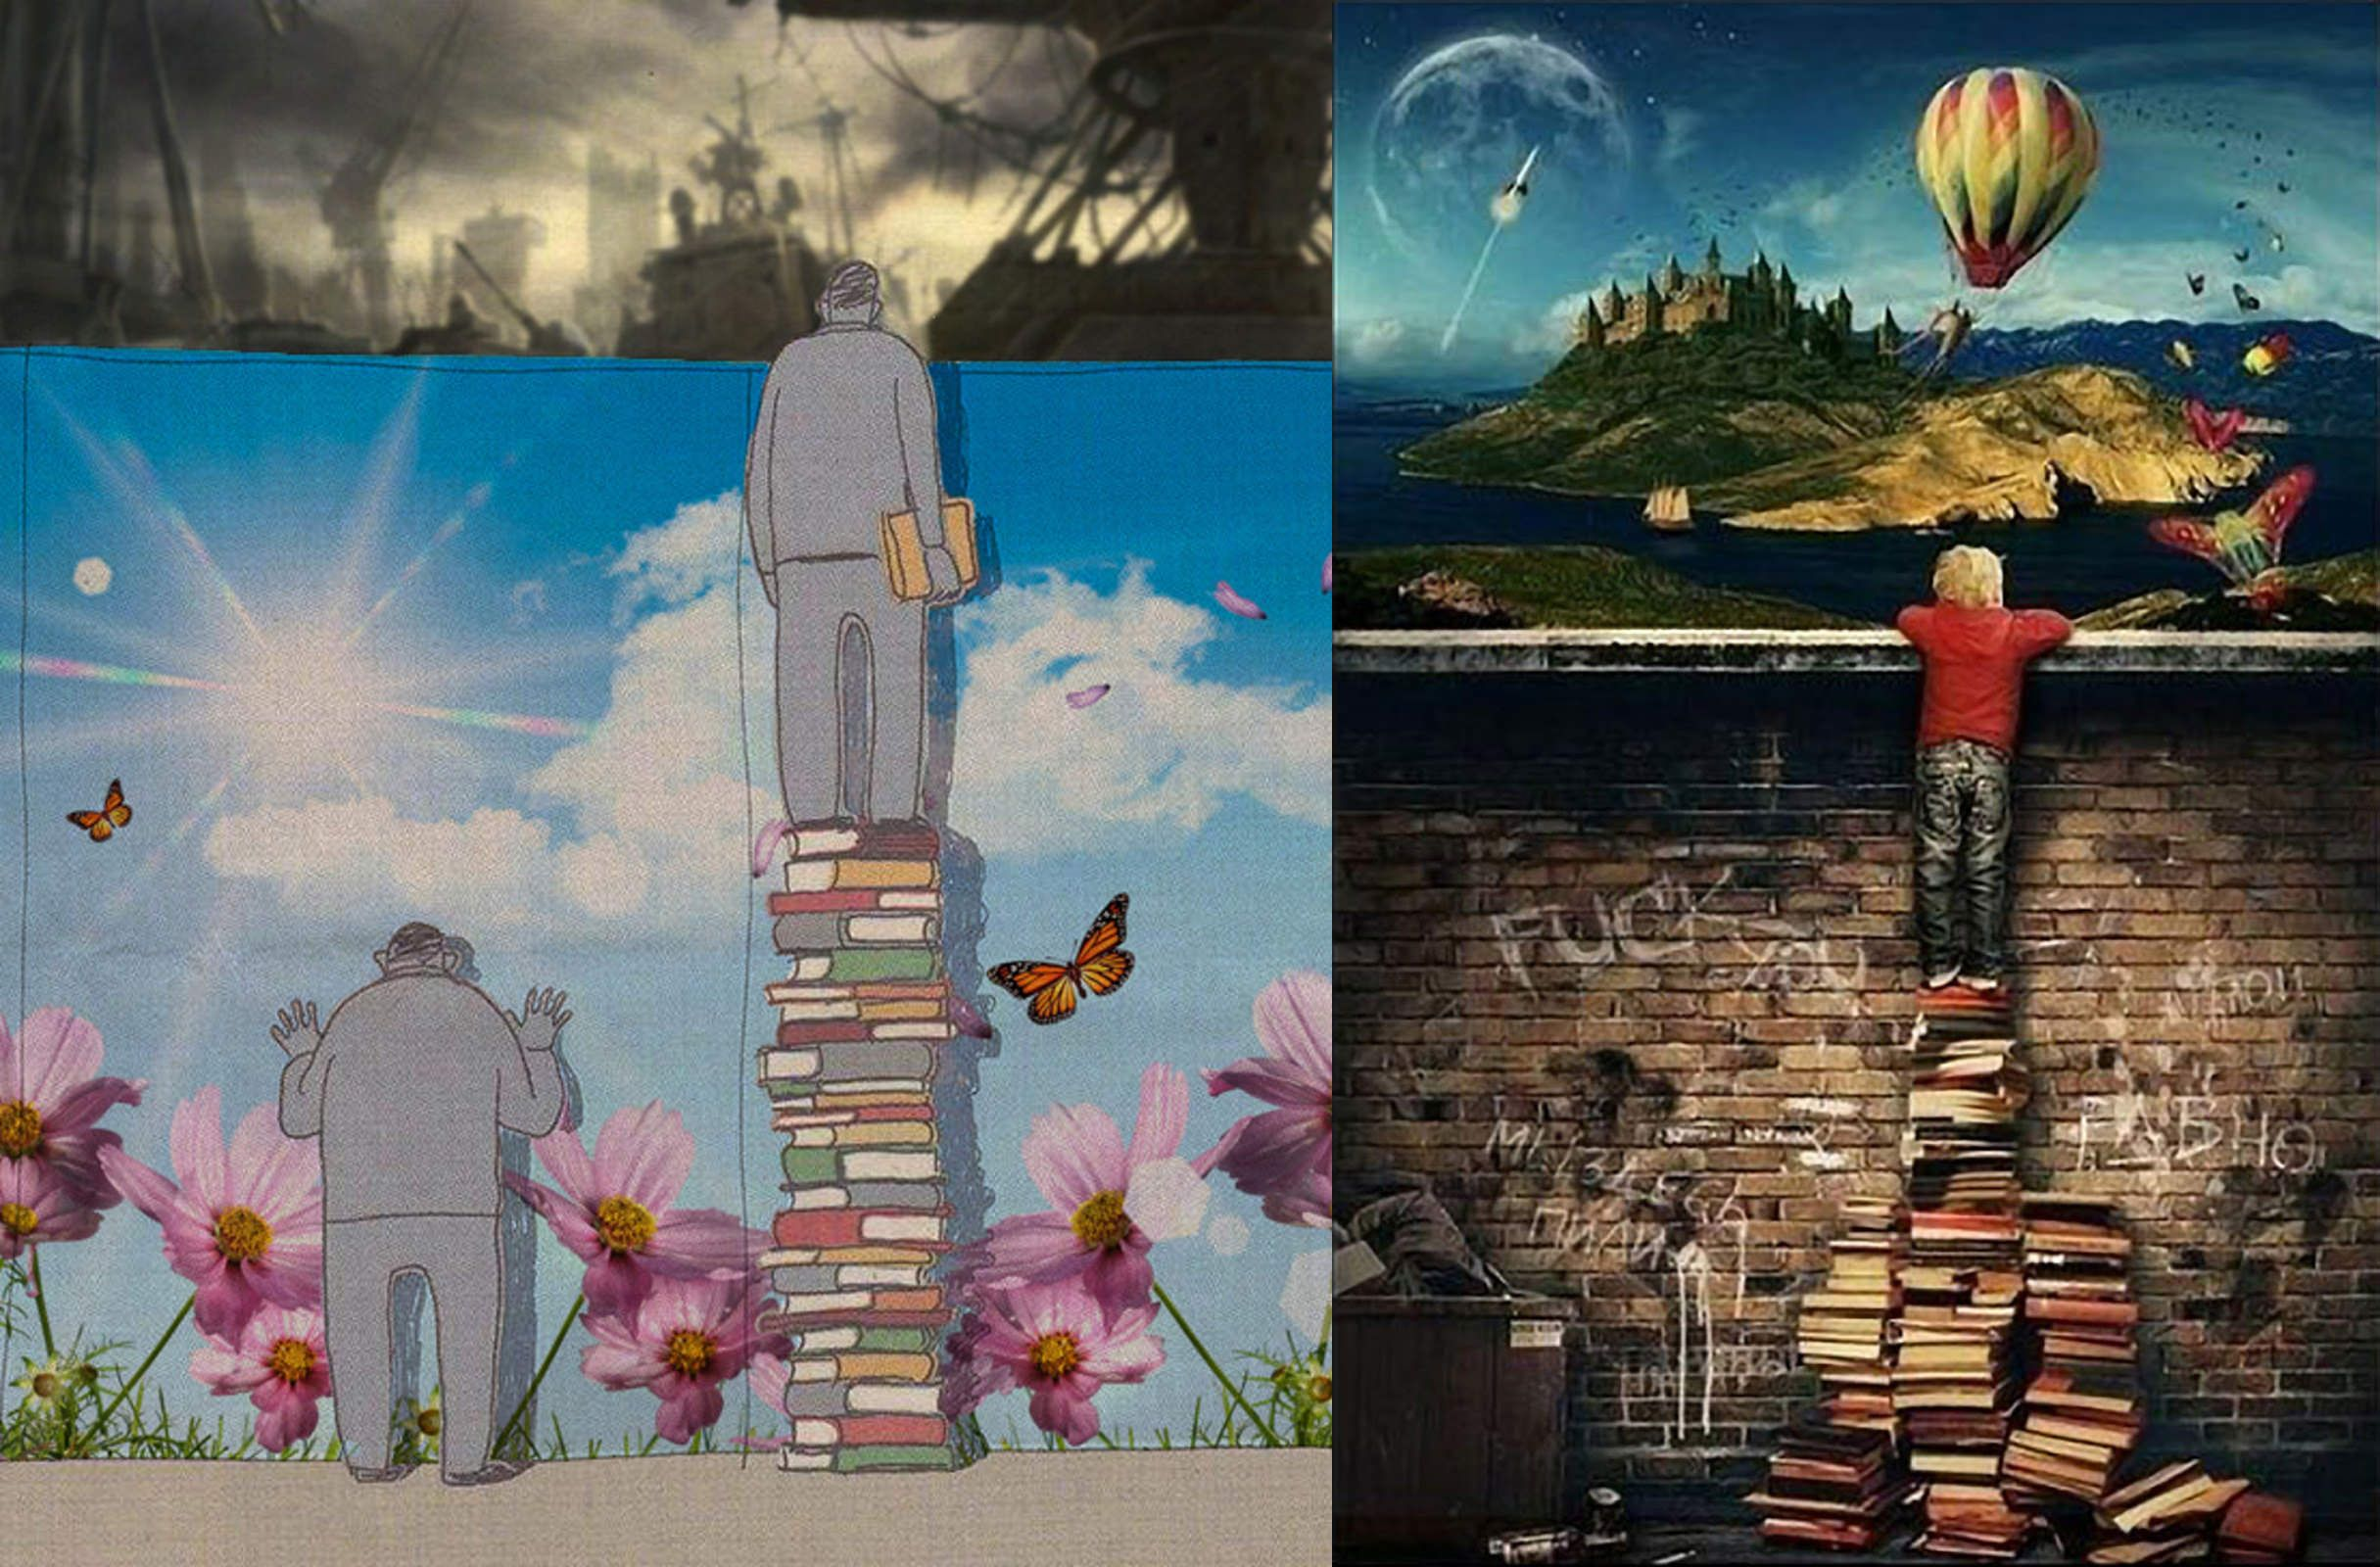 Two different artists' interpretations of the same concept